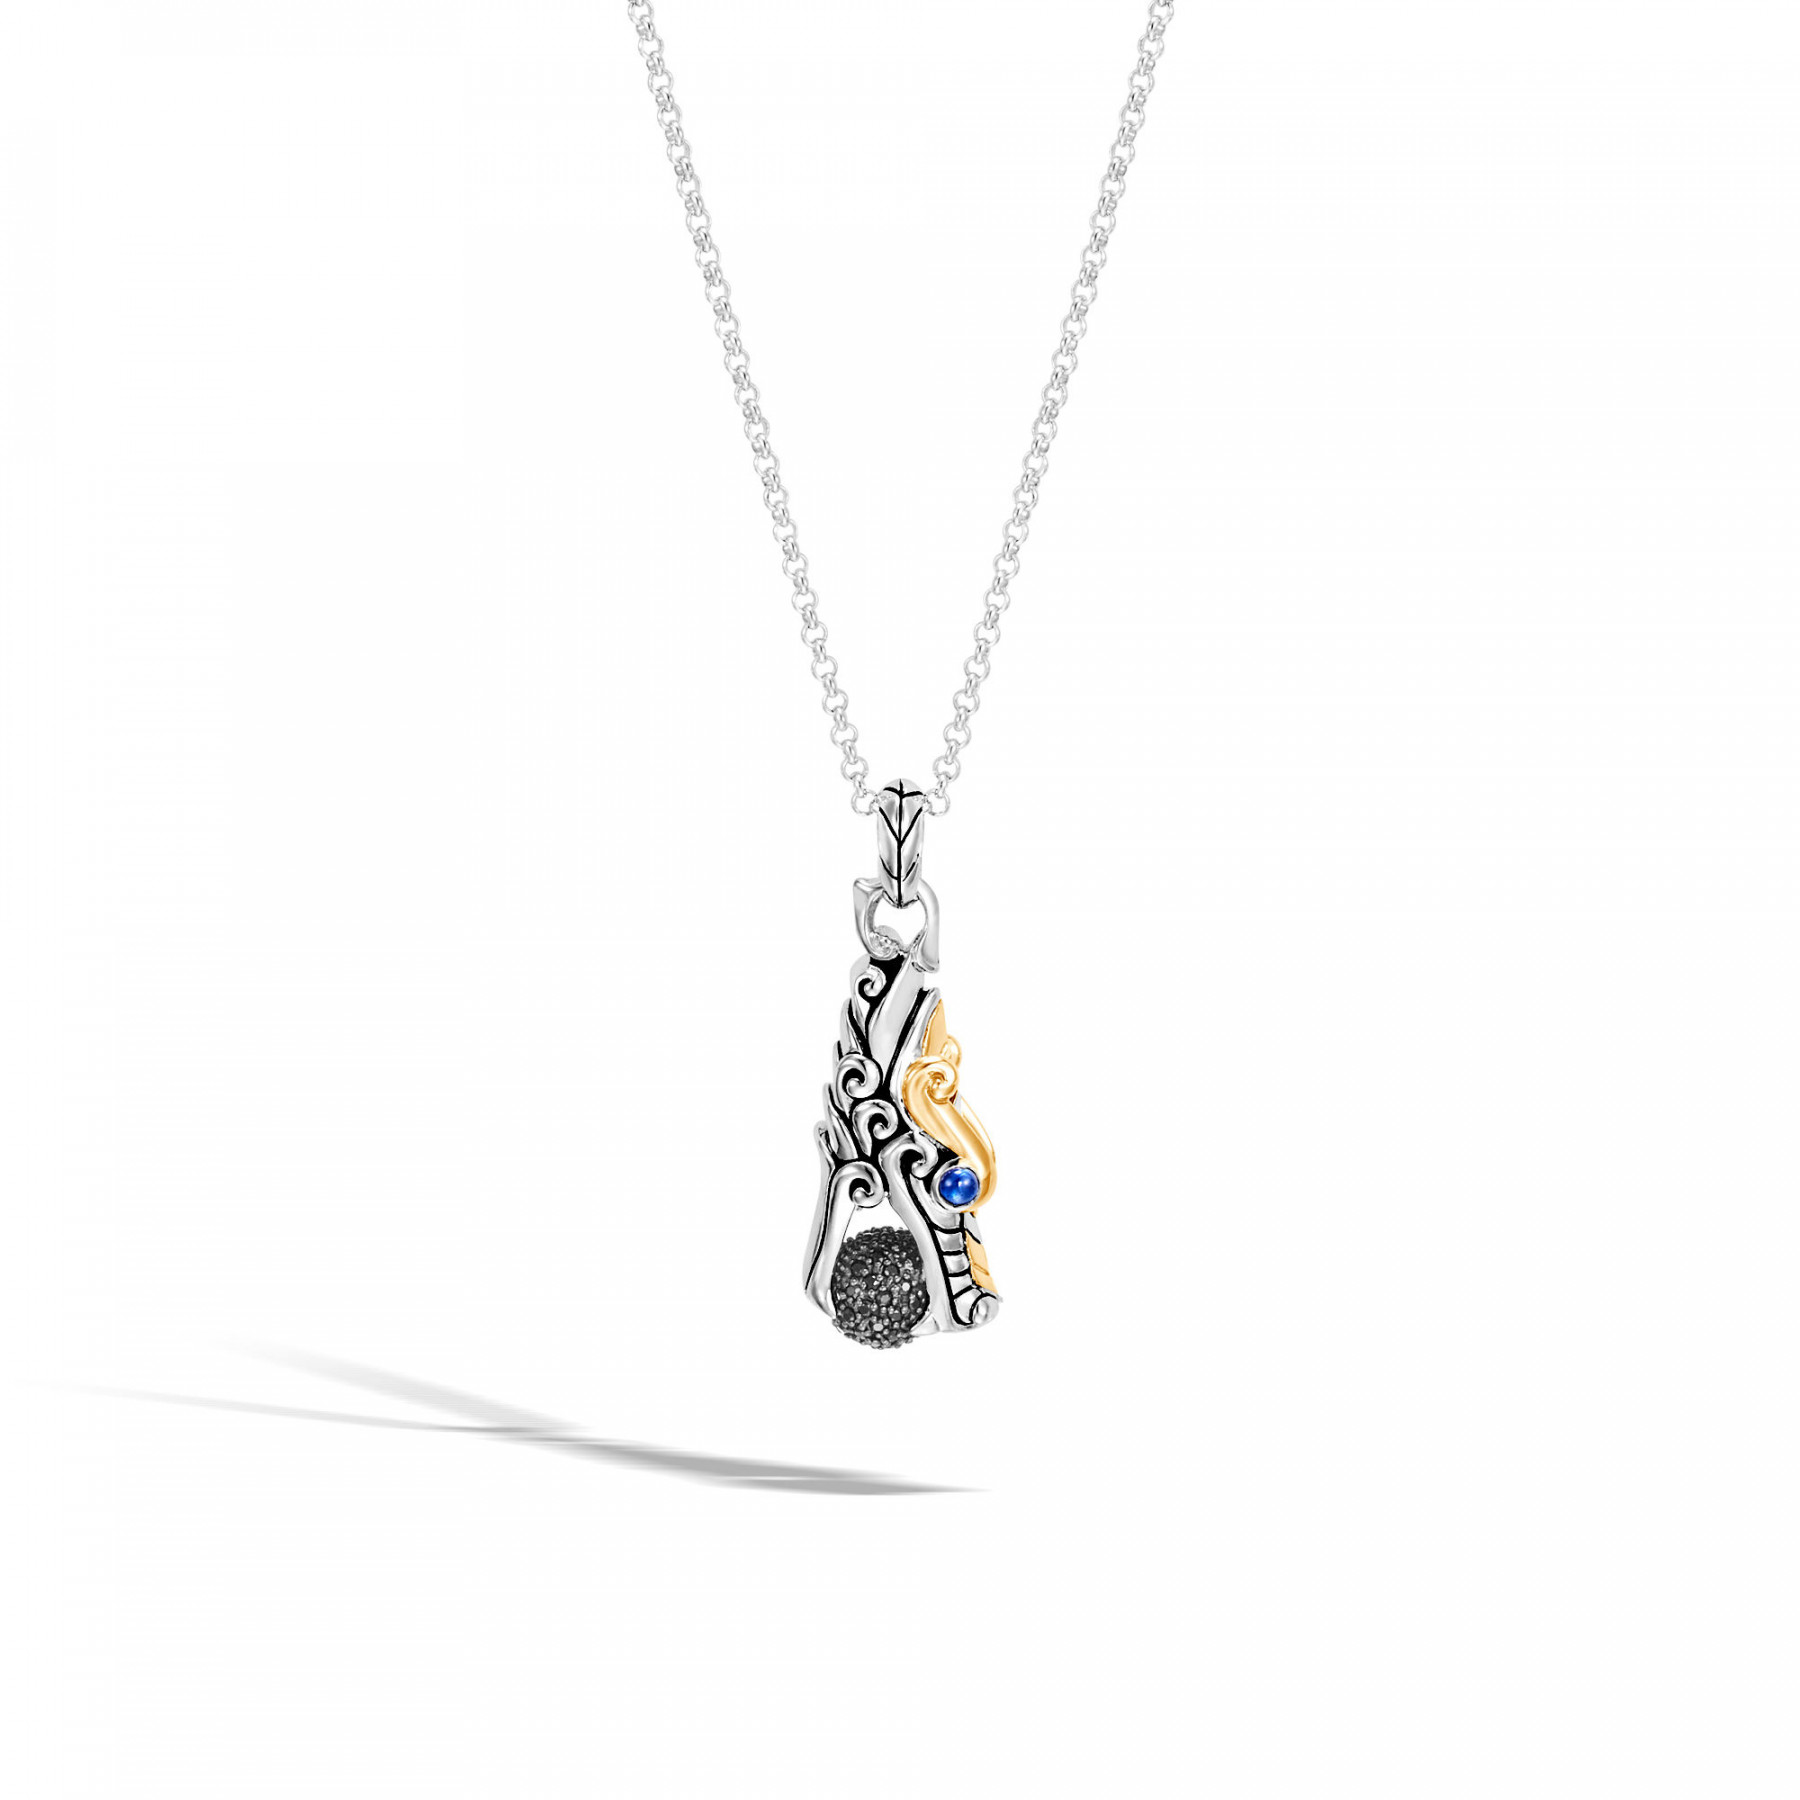 John Hardy Legends Naga Dragon with Ball Necklace in Silver & Gold